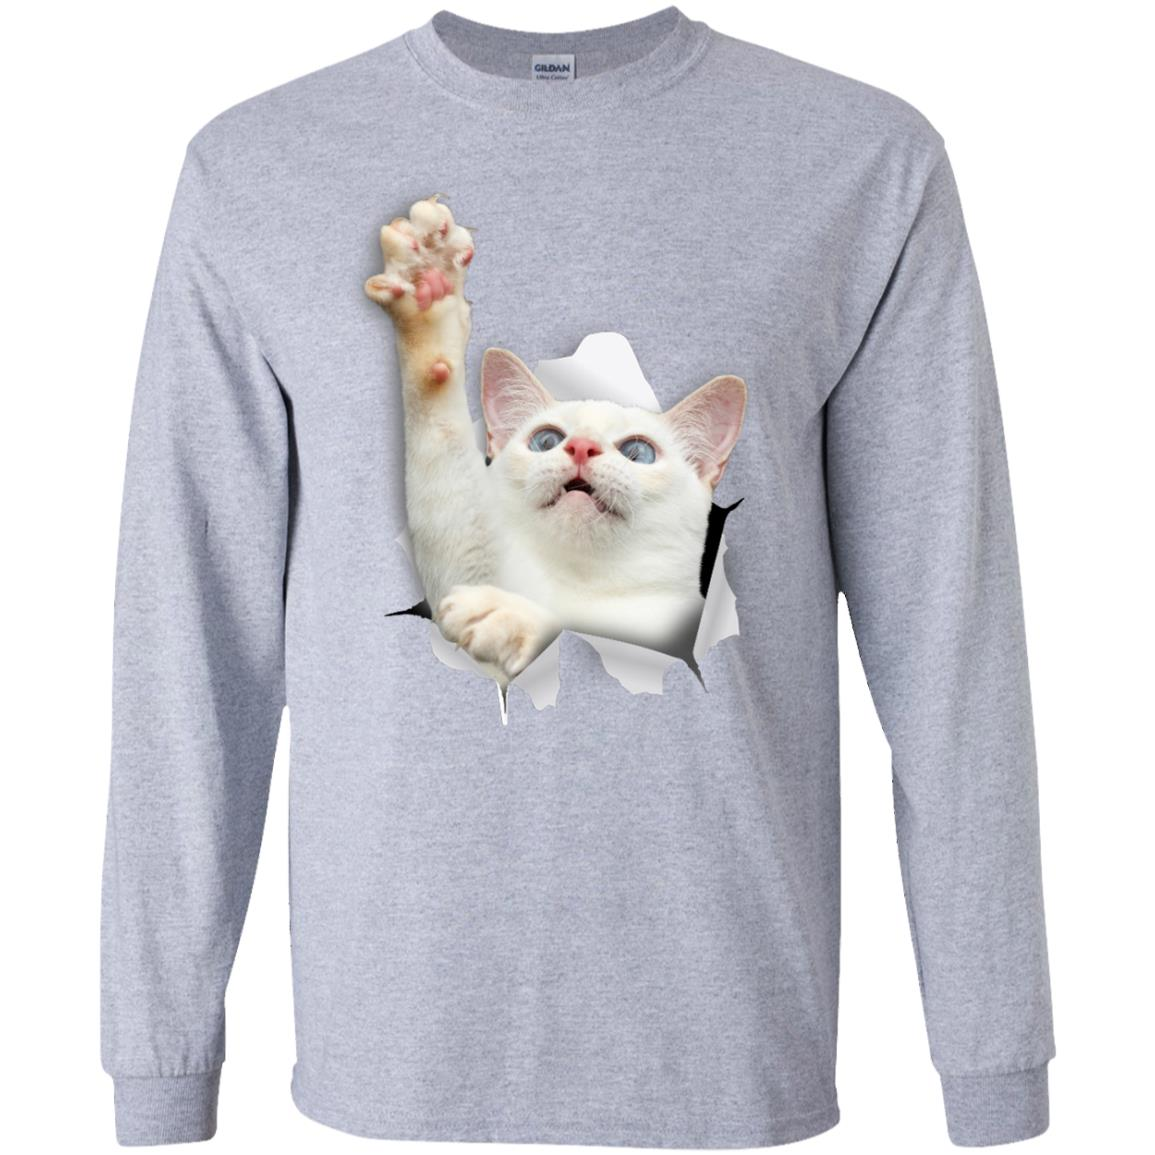 White Cat Reaching Long Sleeve Ultra Cotton T-Shirt